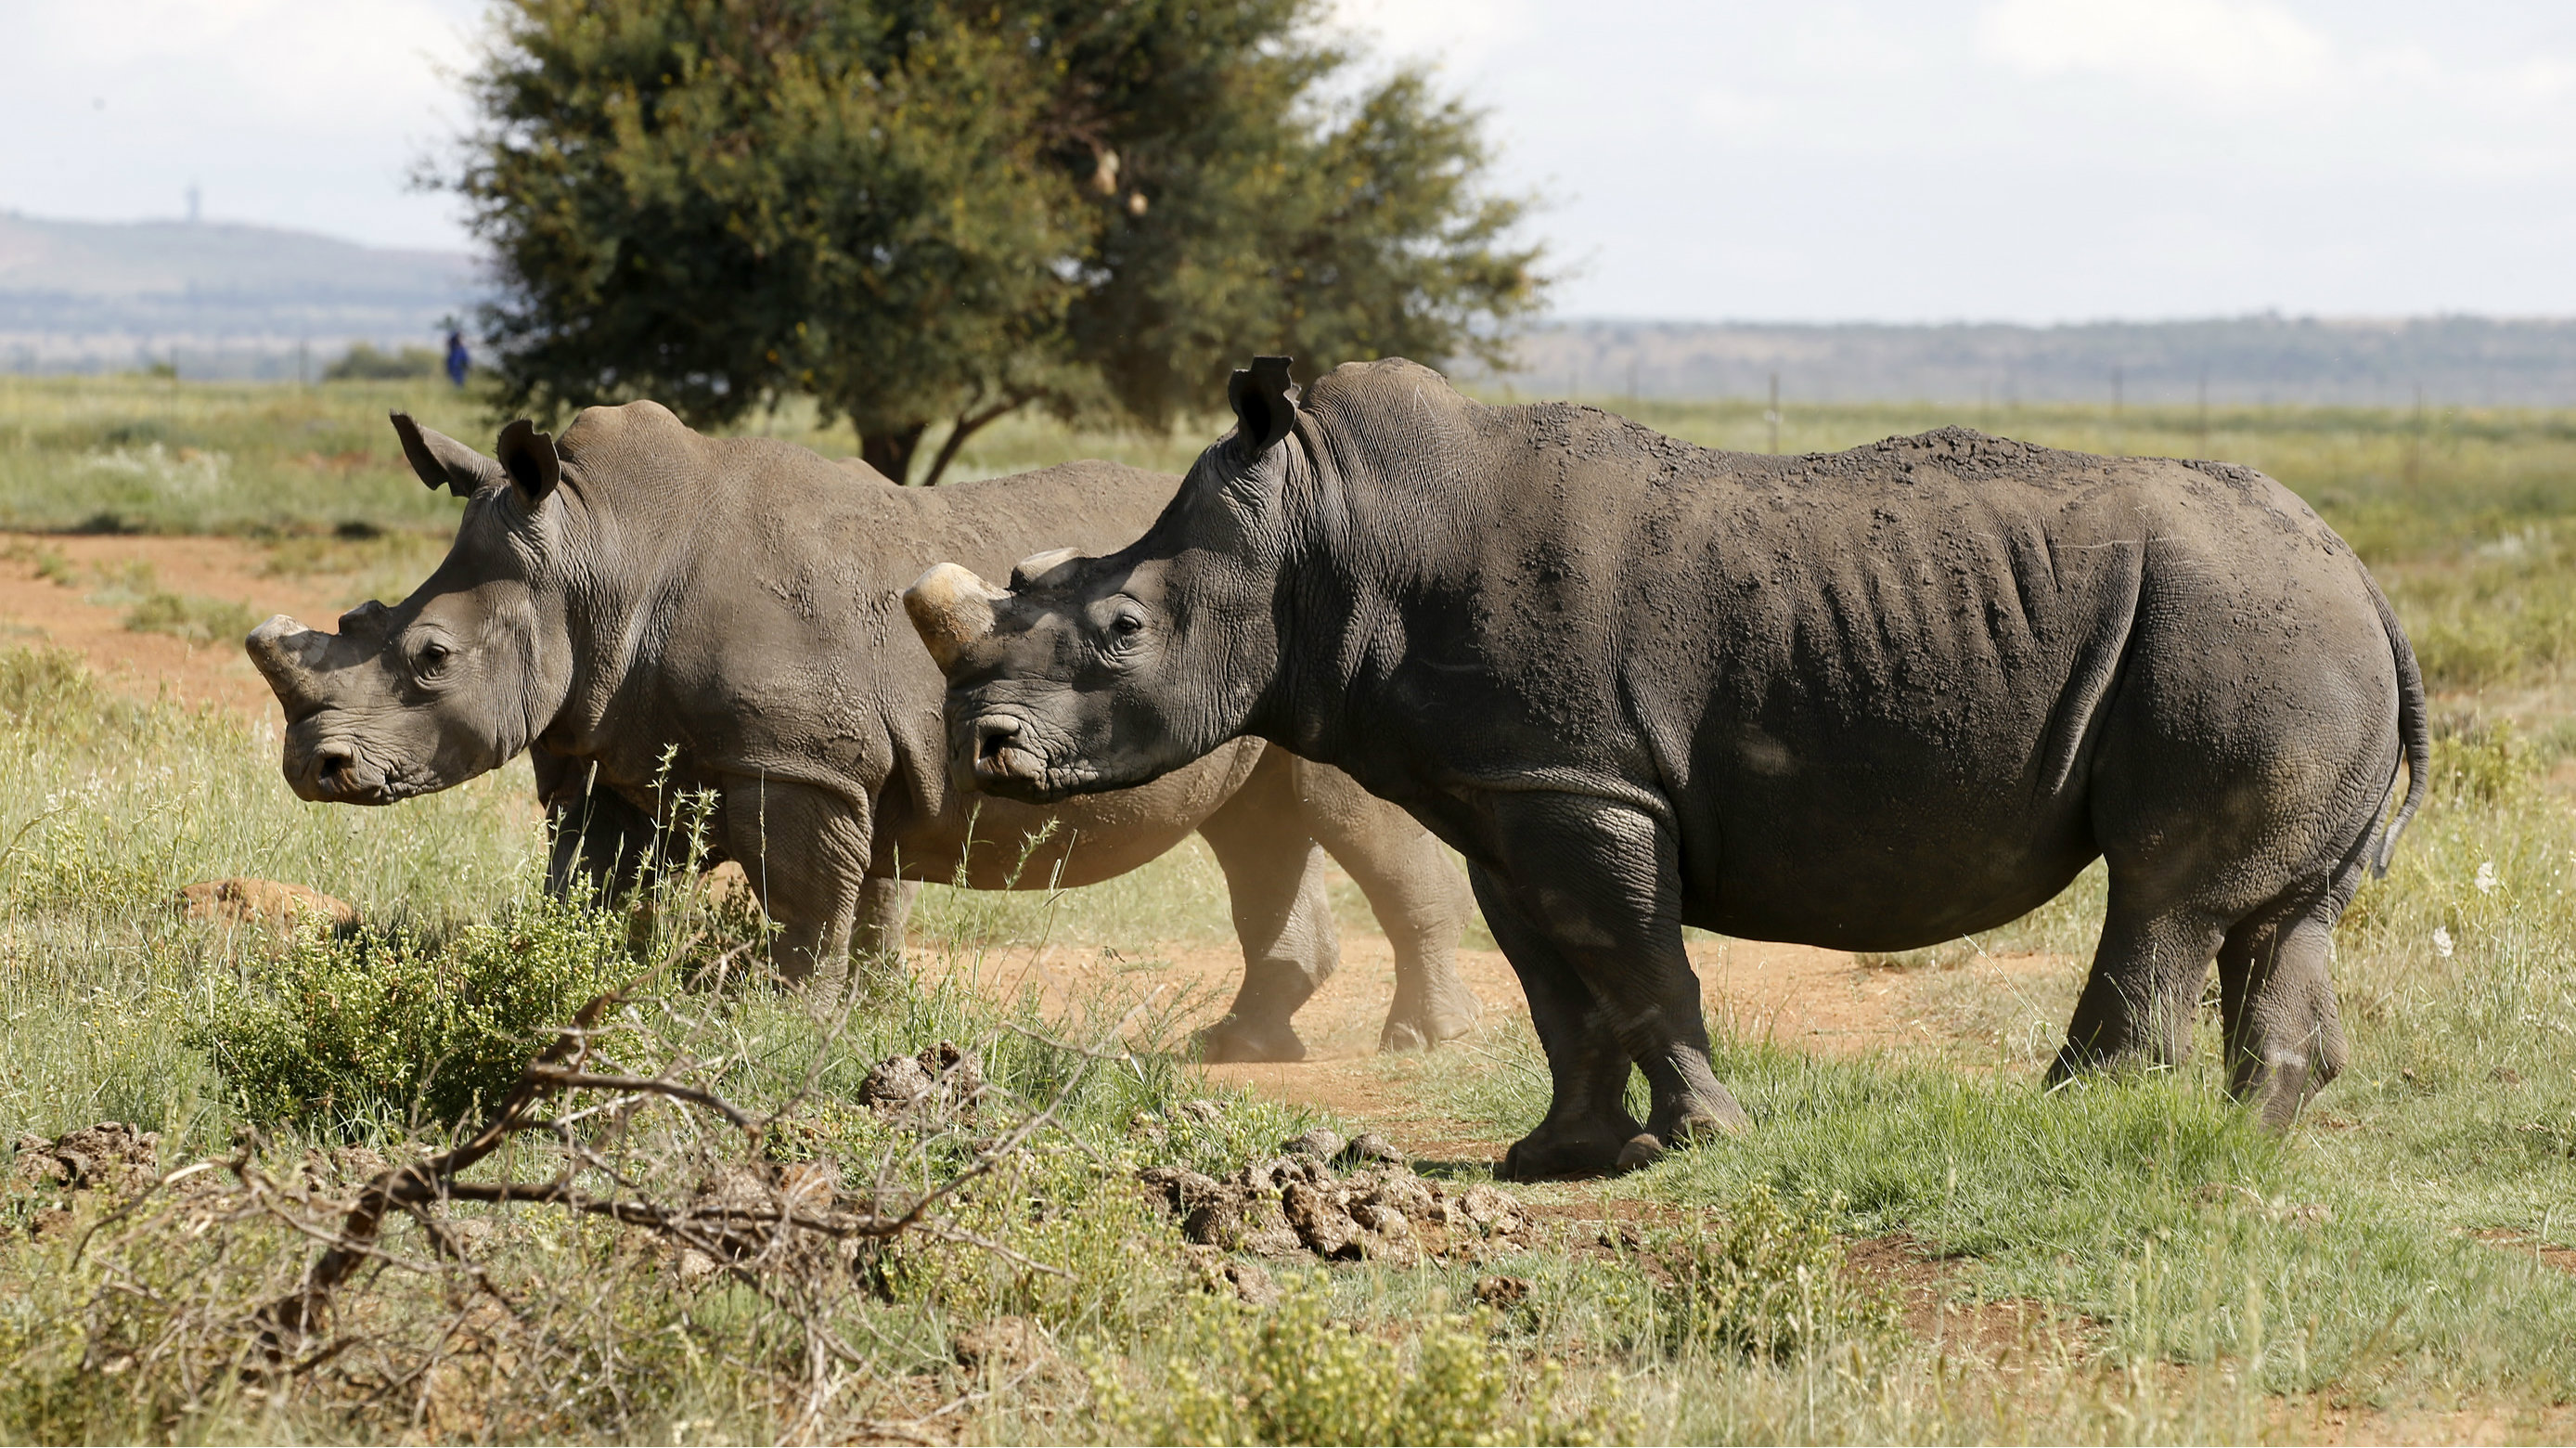 DATE IMPORTED:February 24, 2016Black rhinos, one of the world's endangered animals, are seen at a farm outside Klerksdorp, in the north west province, South Africa, February 24, 2016